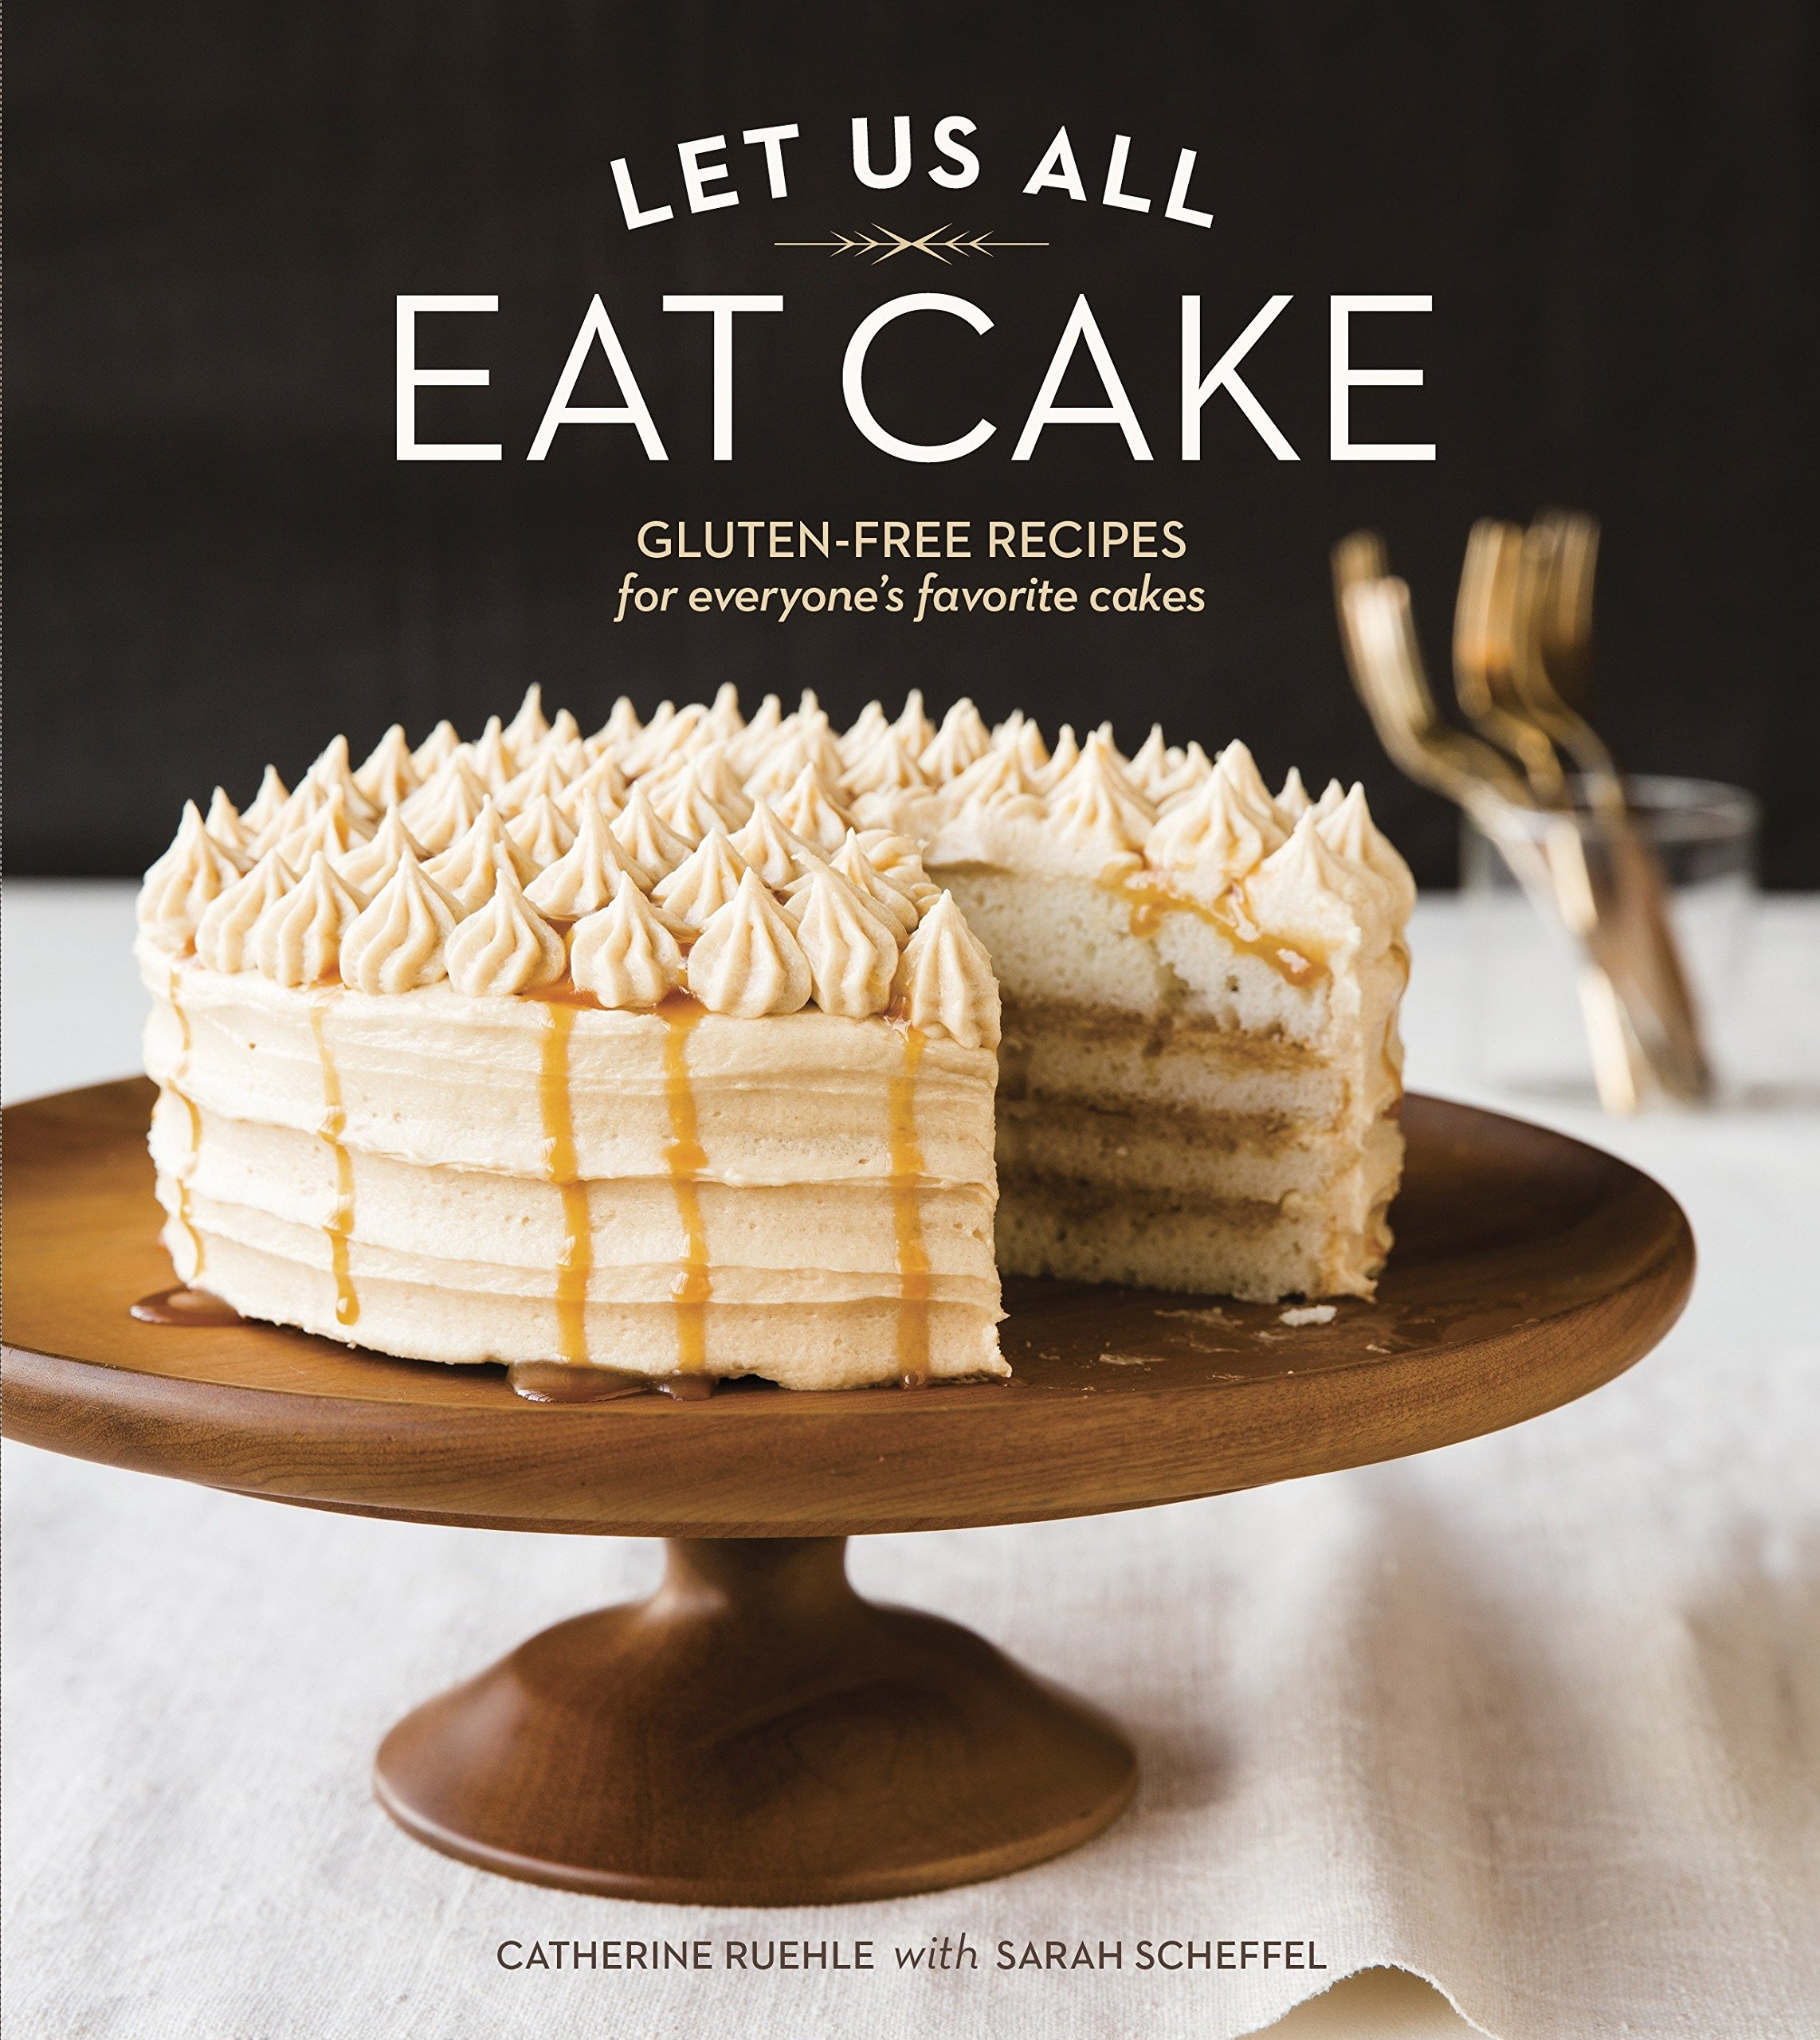 Let Us All Eat Cake: Gluten-Free Recipes for Everyone's Favorite Cakes [A Baking Book] by Ten Speed Press